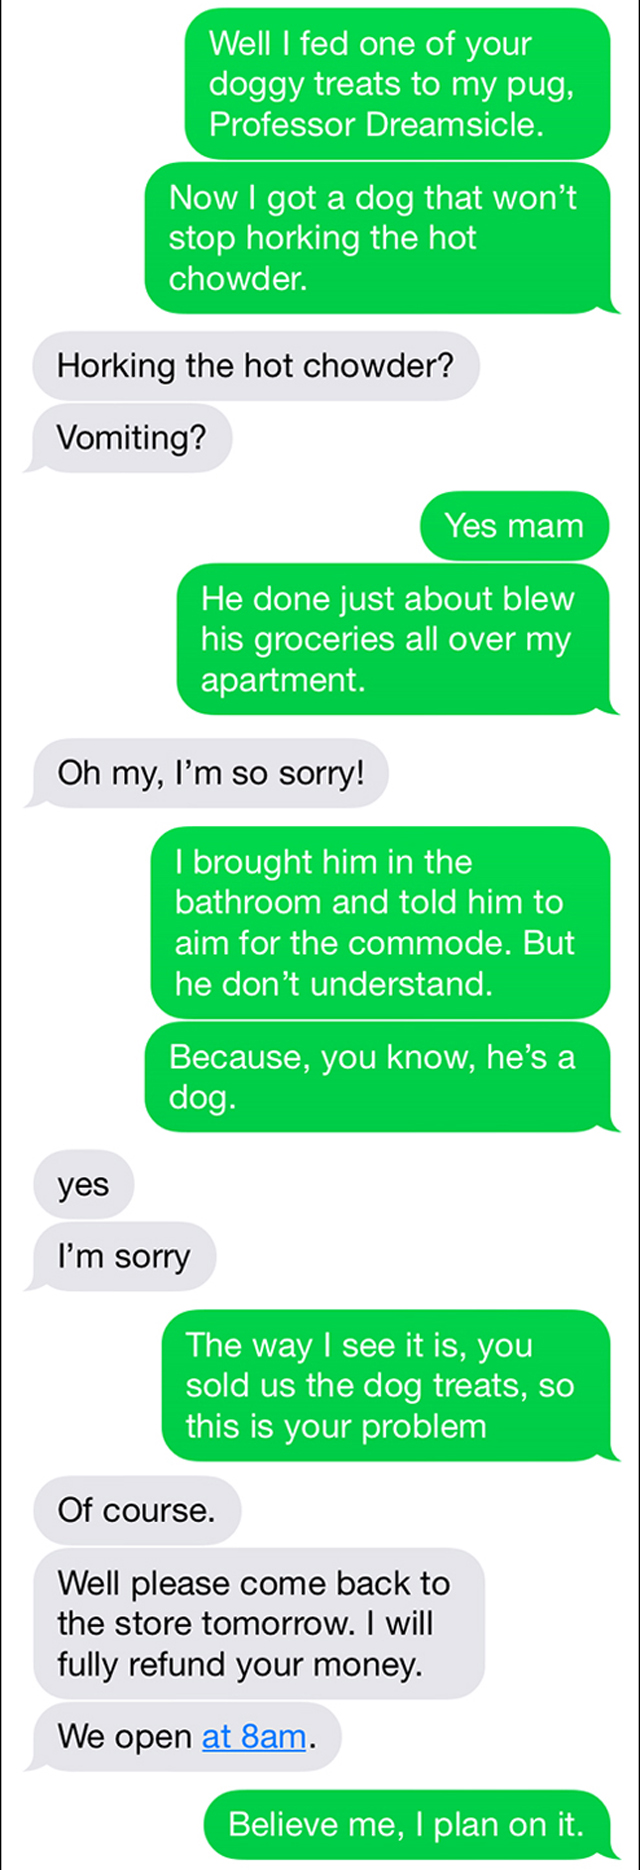 Text Trolling The Pet Store Owner